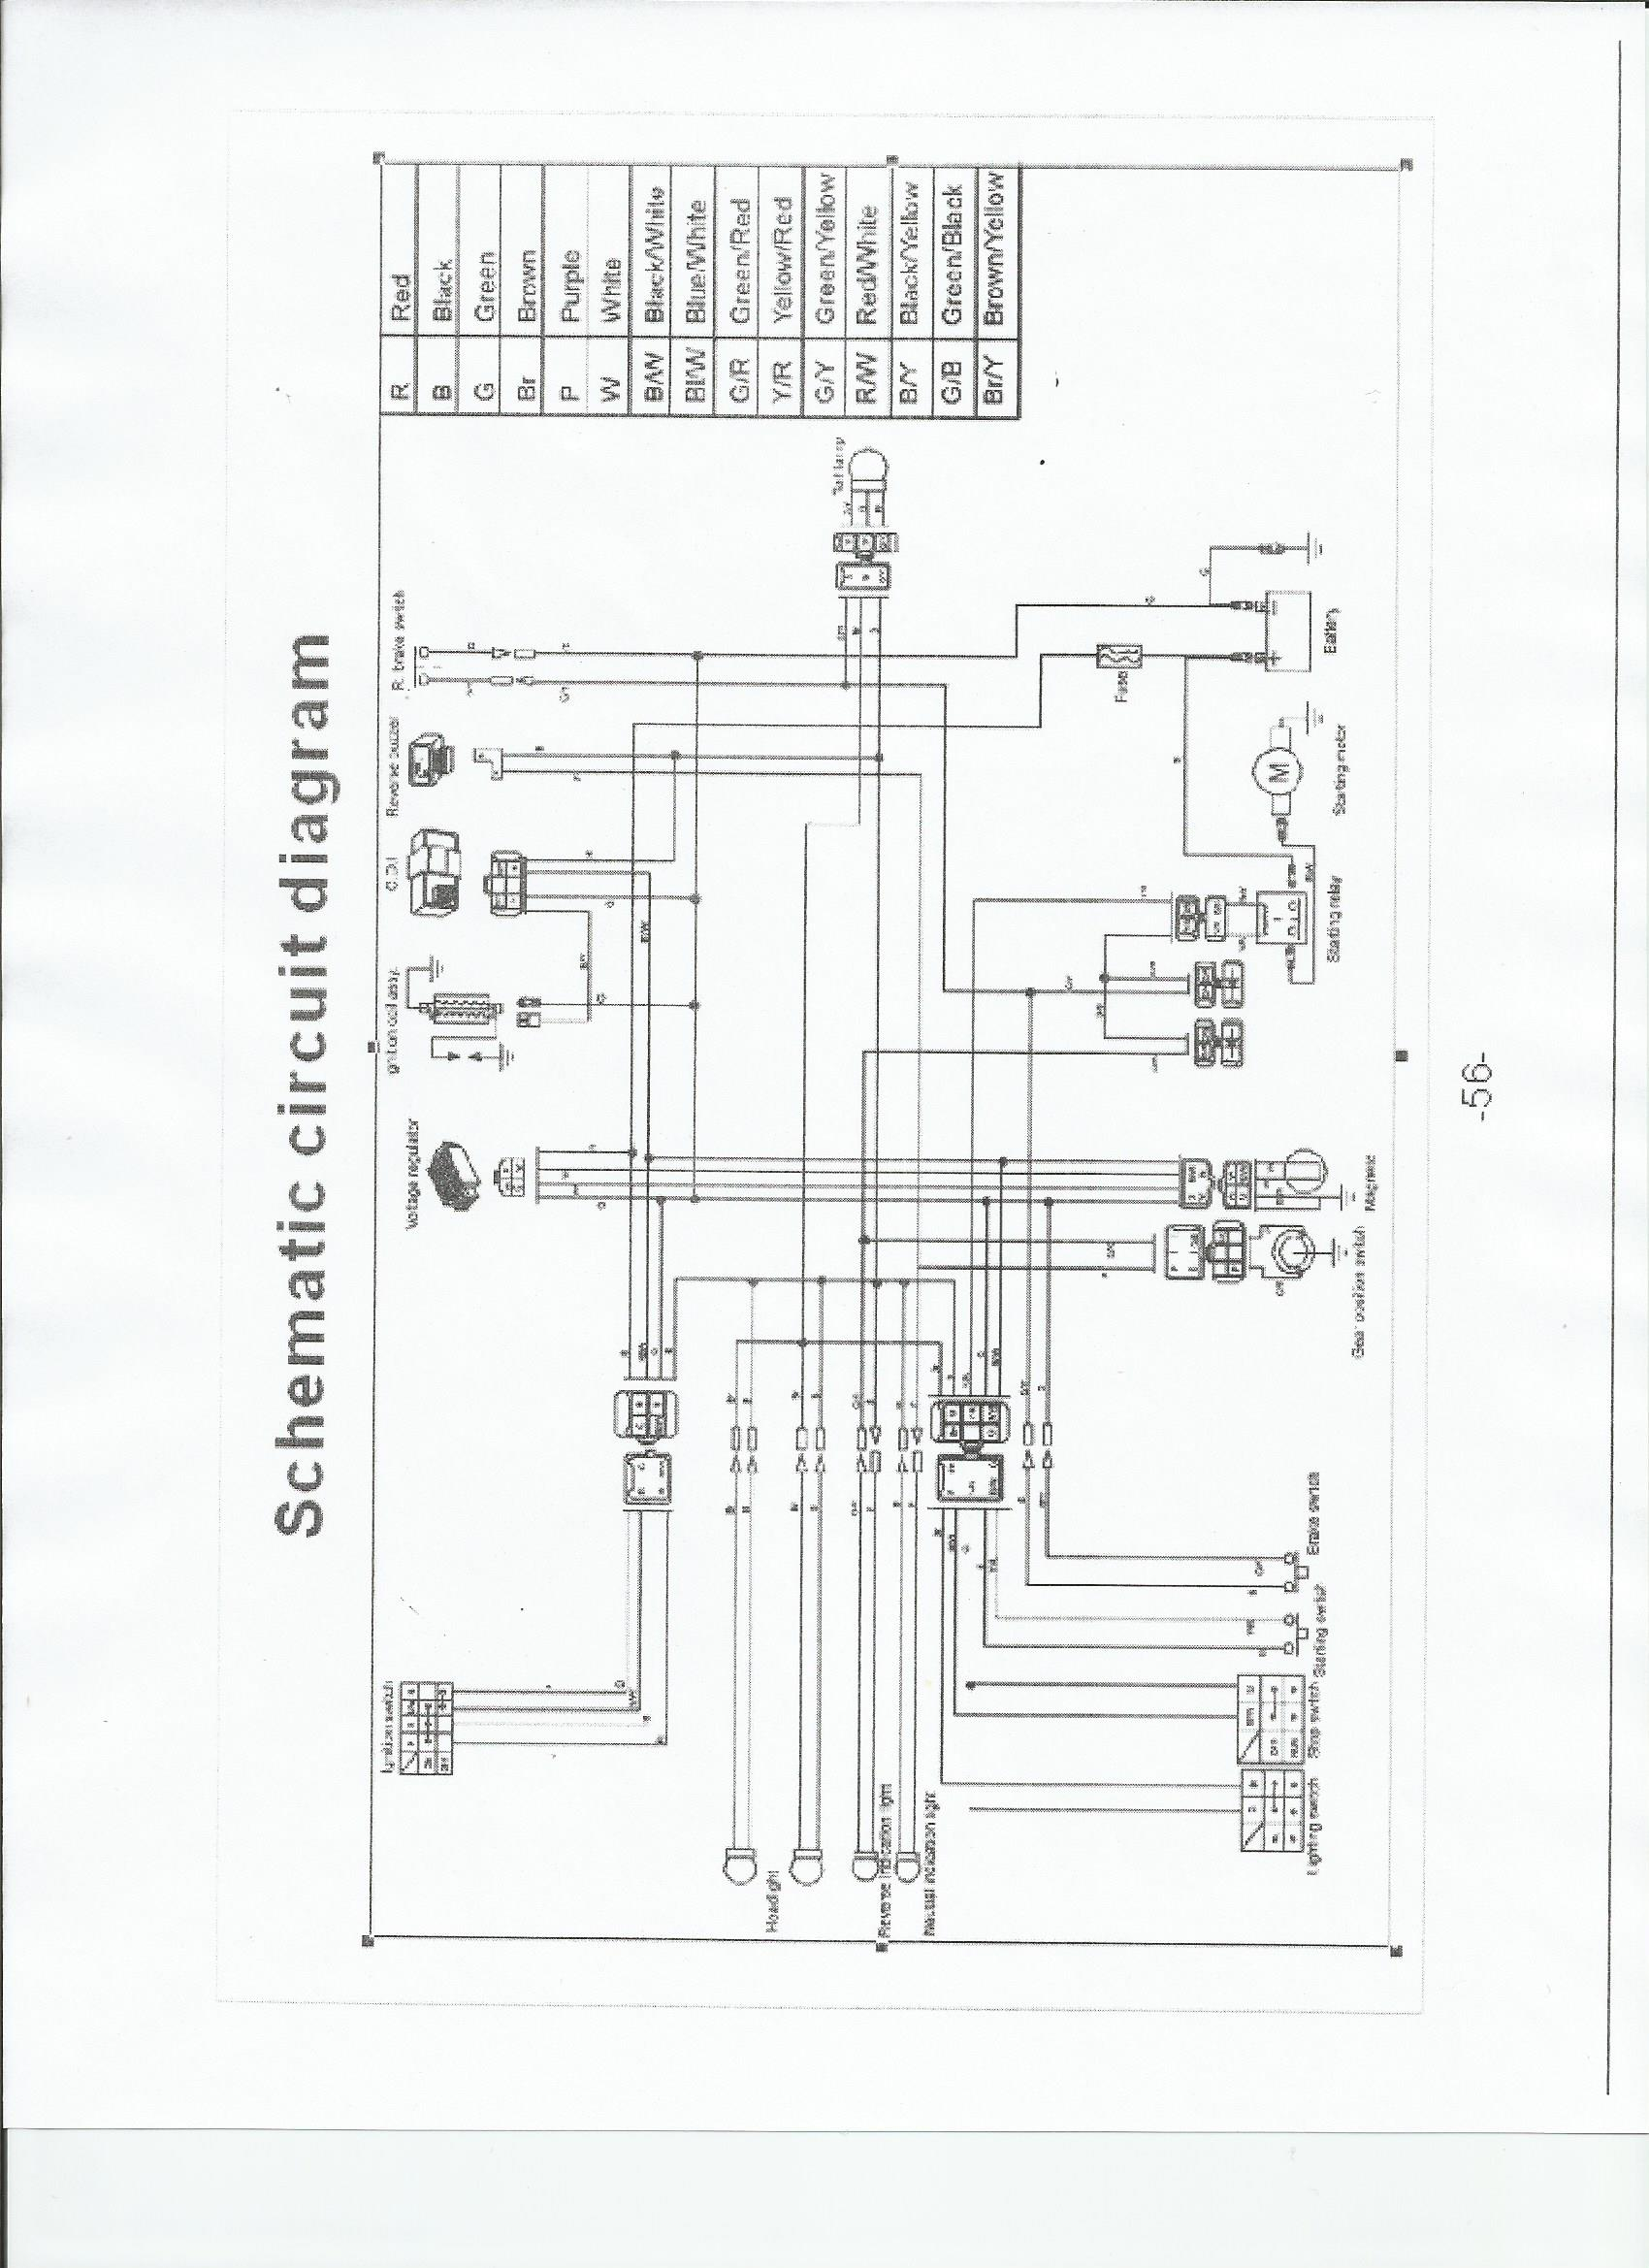 medium resolution of buyang motorcycle wiring diagram simple wiring schema along with pocket bike wiring 49cc moreover tao tao 110 wiring diagram